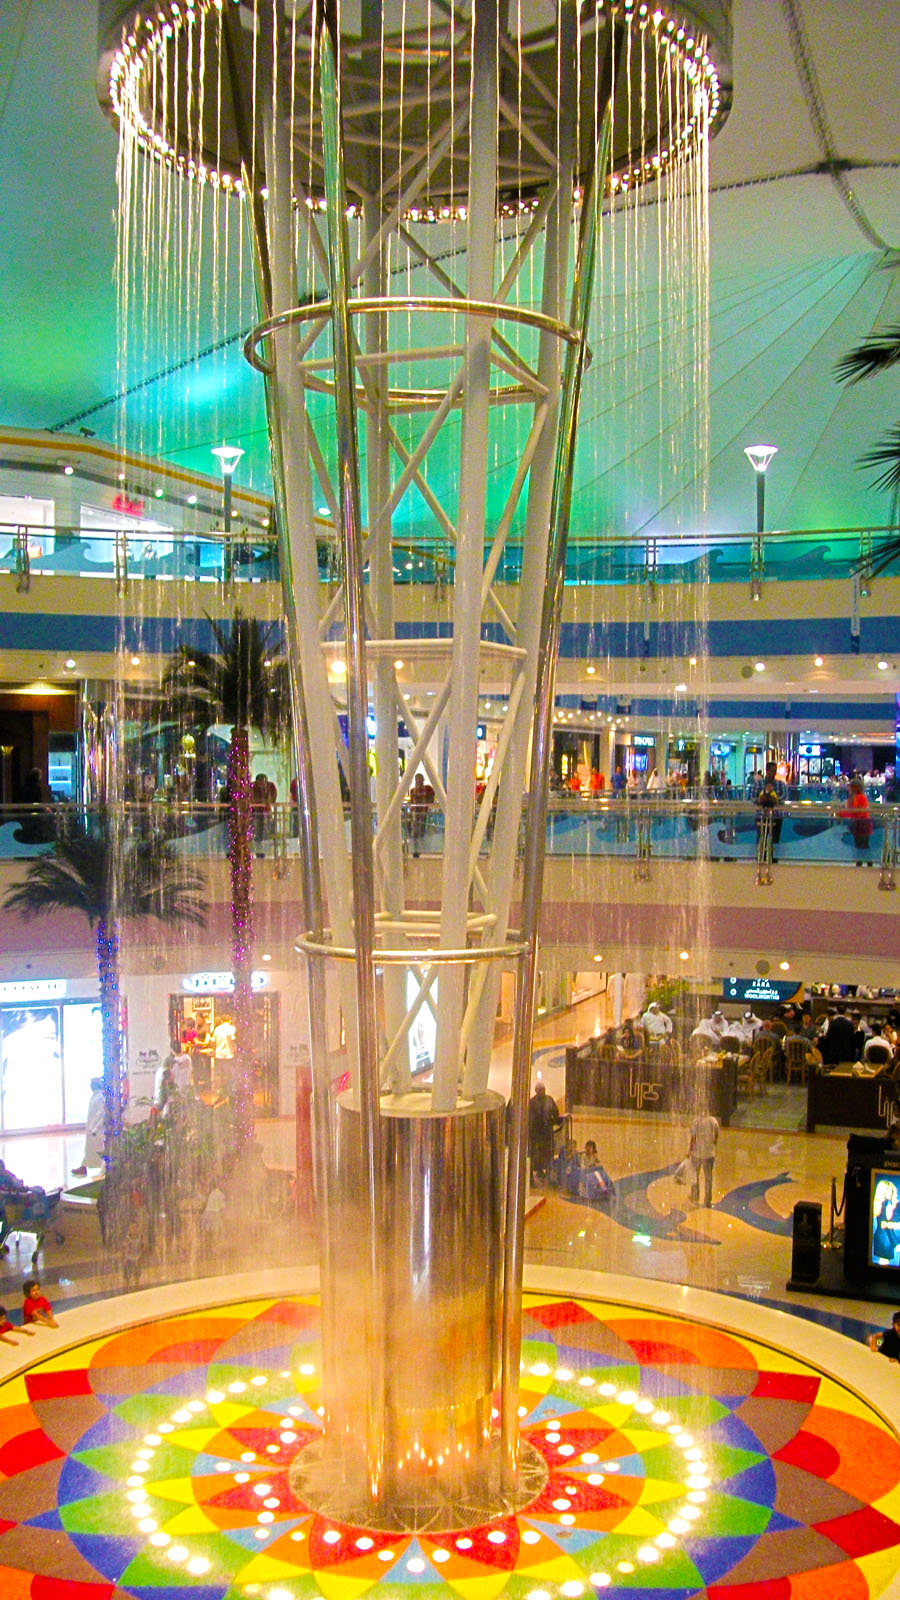 Geometric waterfall inside Marina Mall of Abu Dhabi, United Arab Emirates